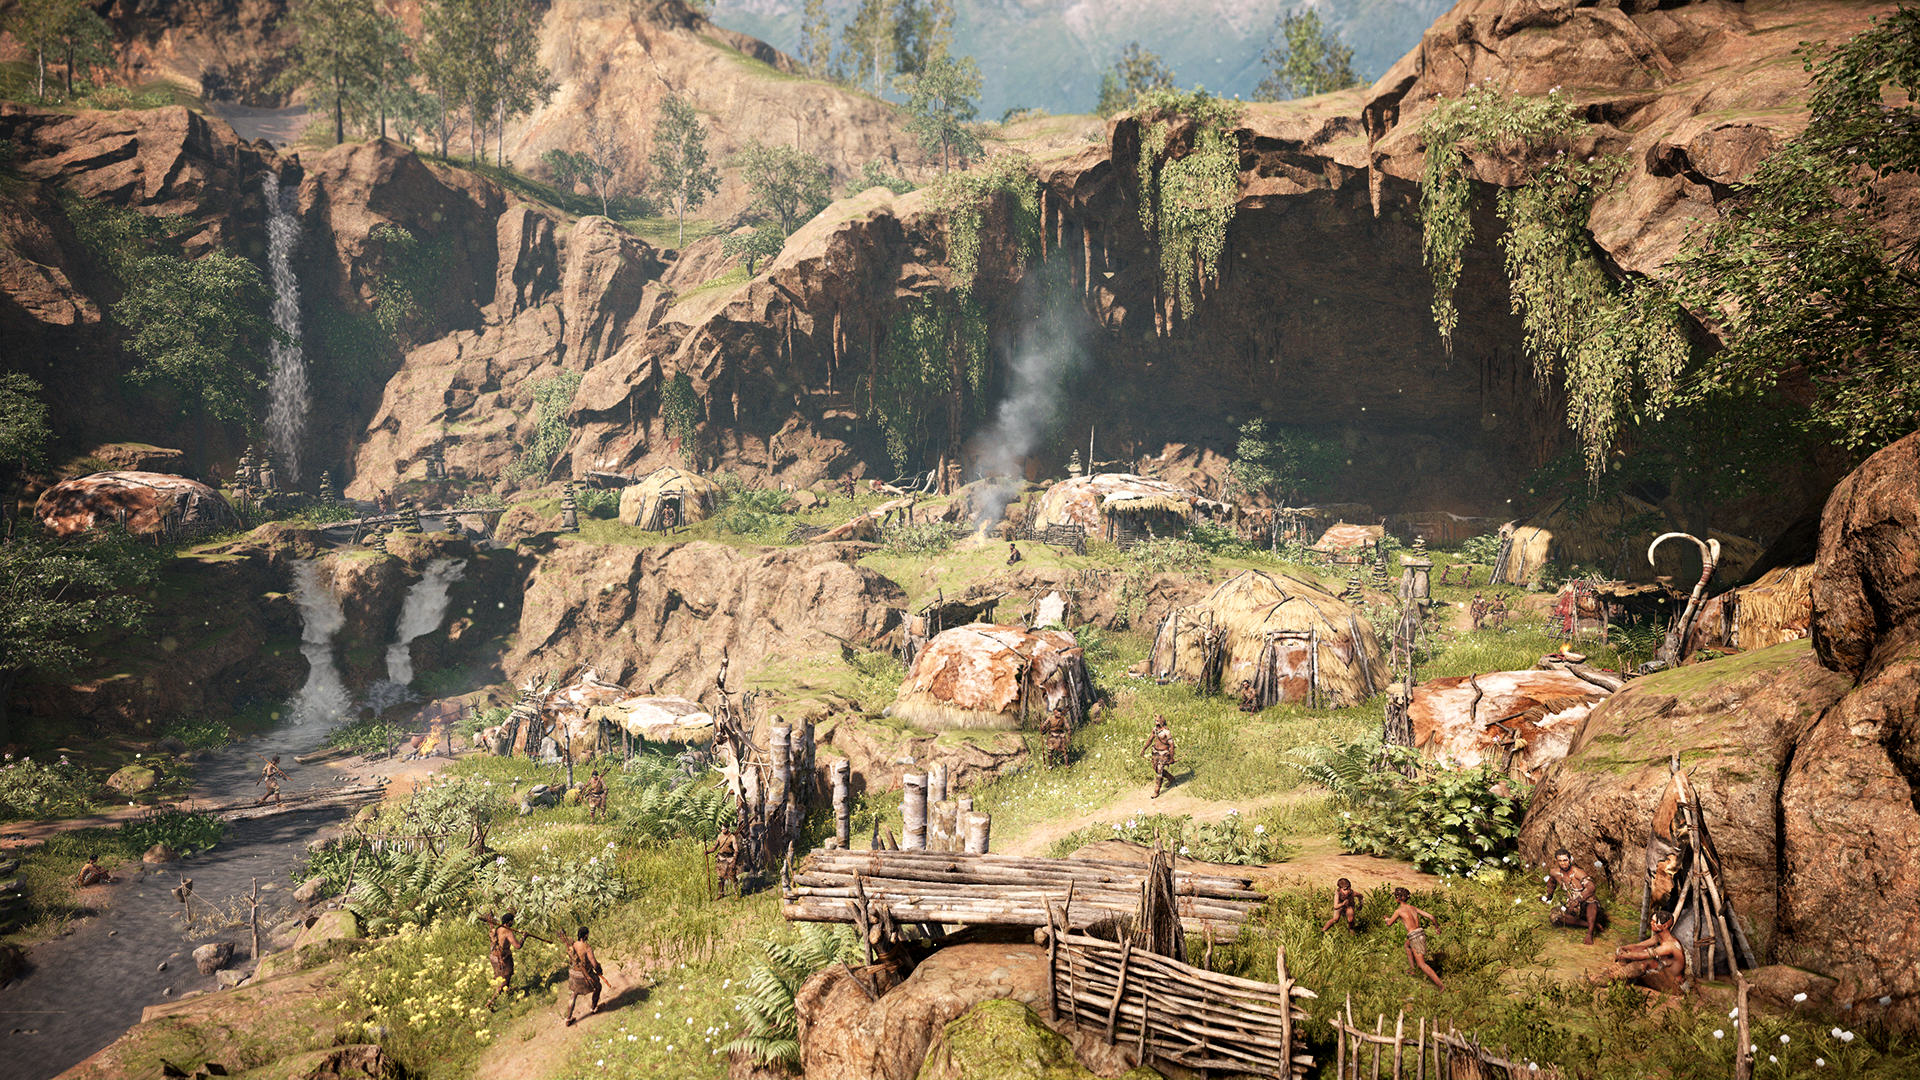 Far Cry Primal Is Shameless Pre Historic Fun, If A Little Shallow FCP 08 Village Complete Screenshots PREVIEW PR 160126 6pm CET 1453716689